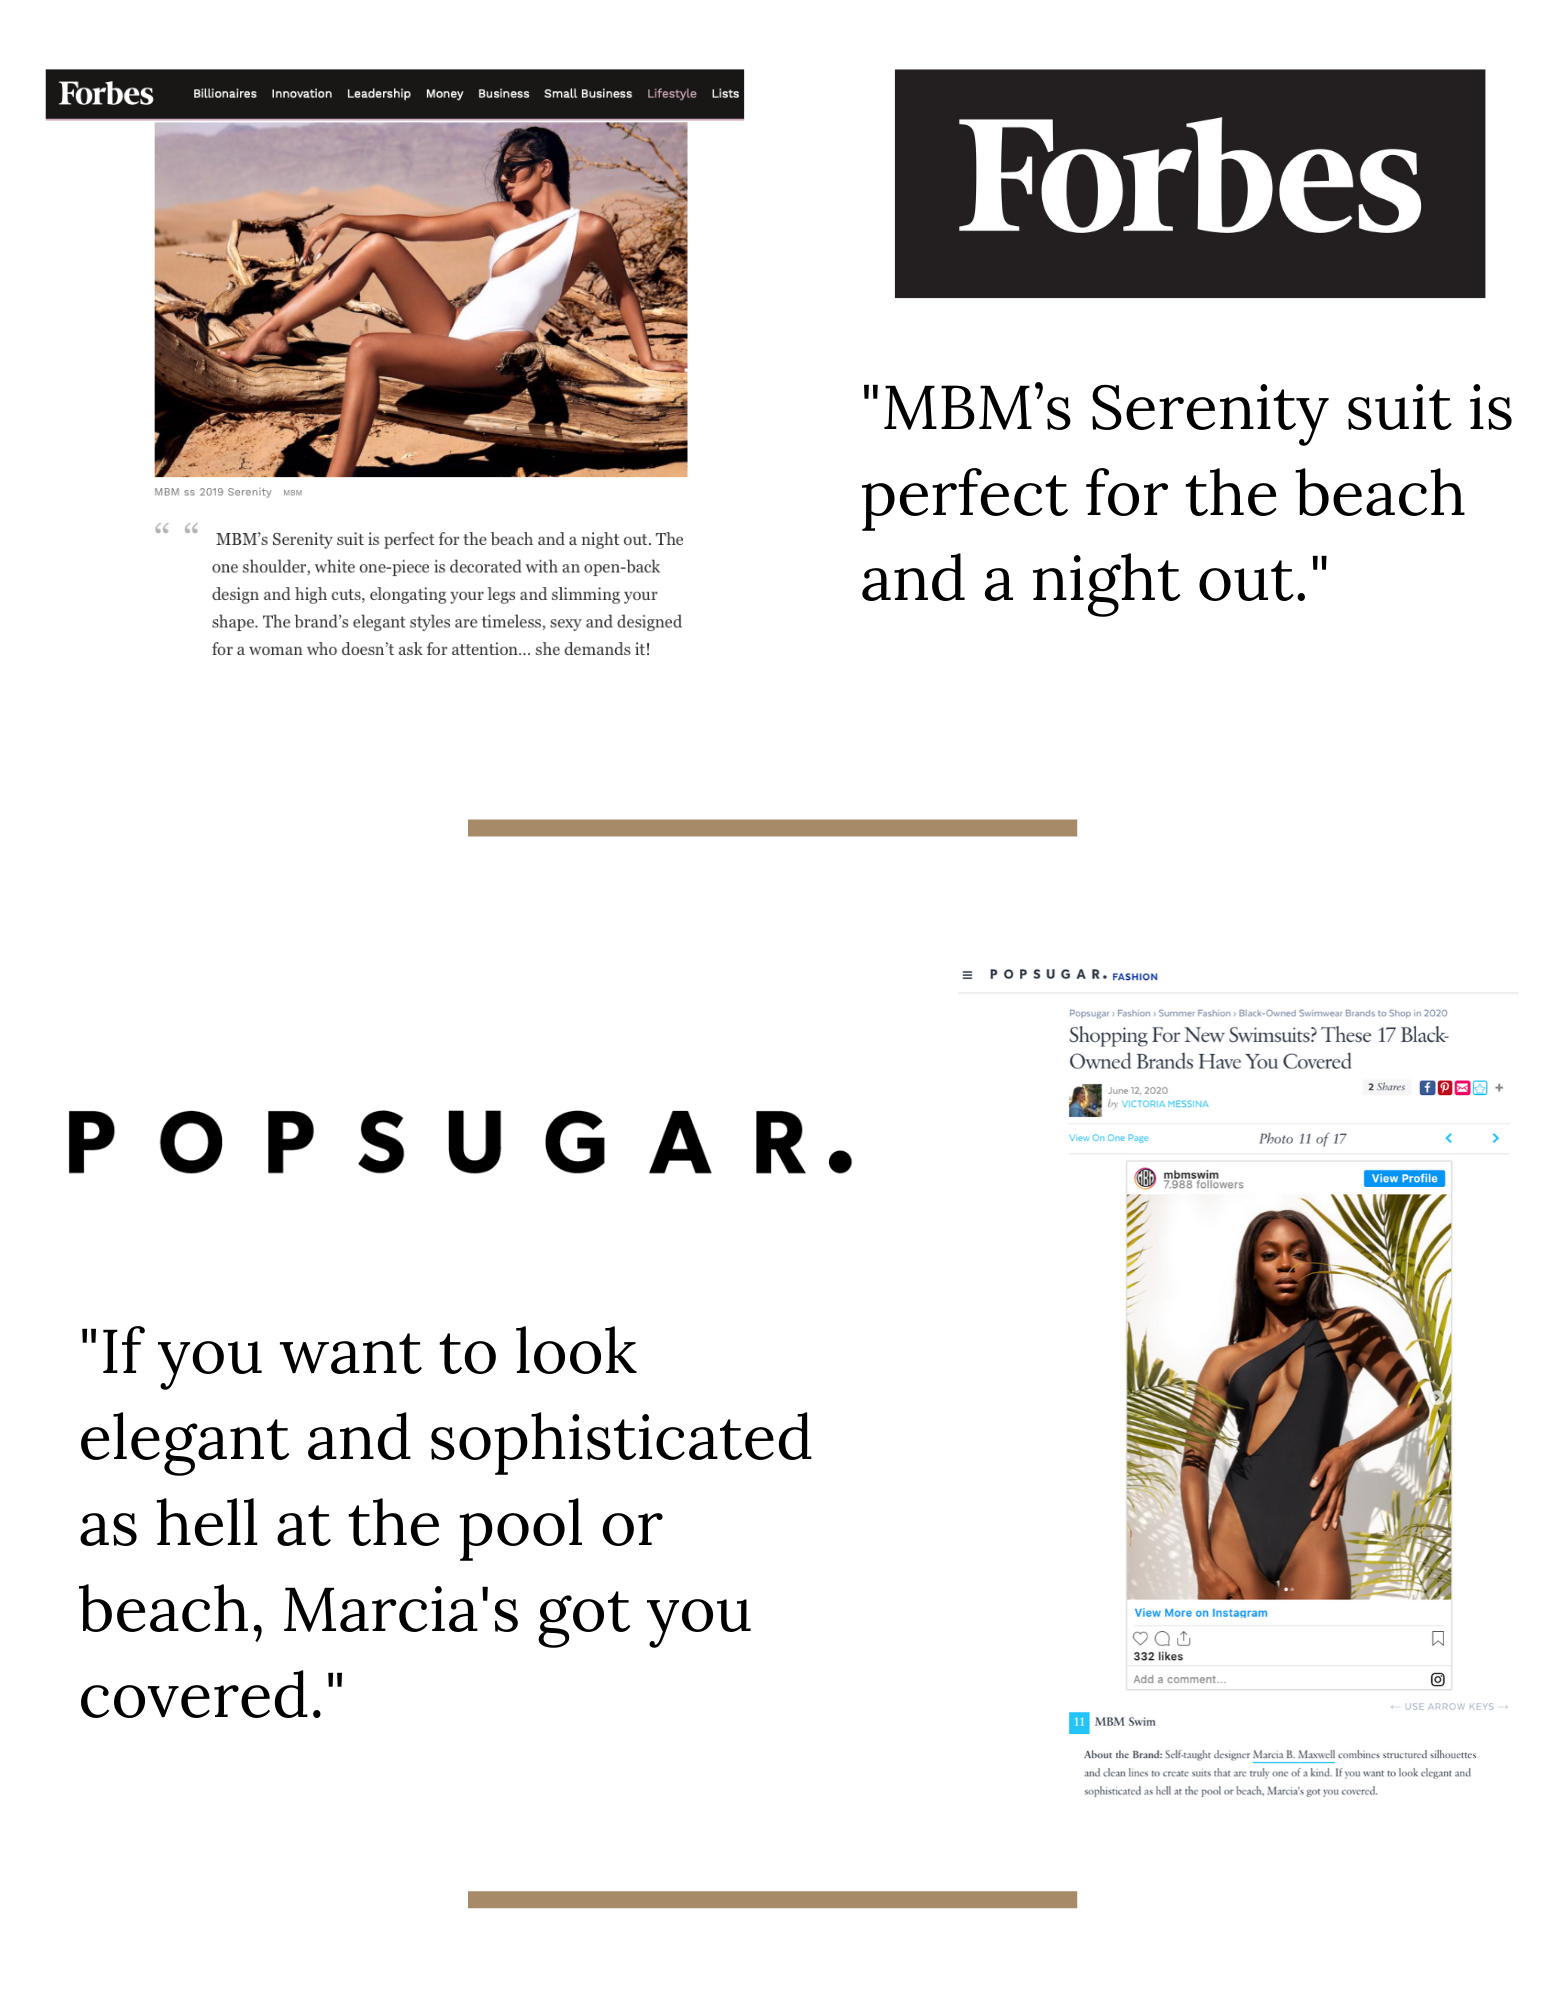 MBM Swim Press - Forbes & Popsugar